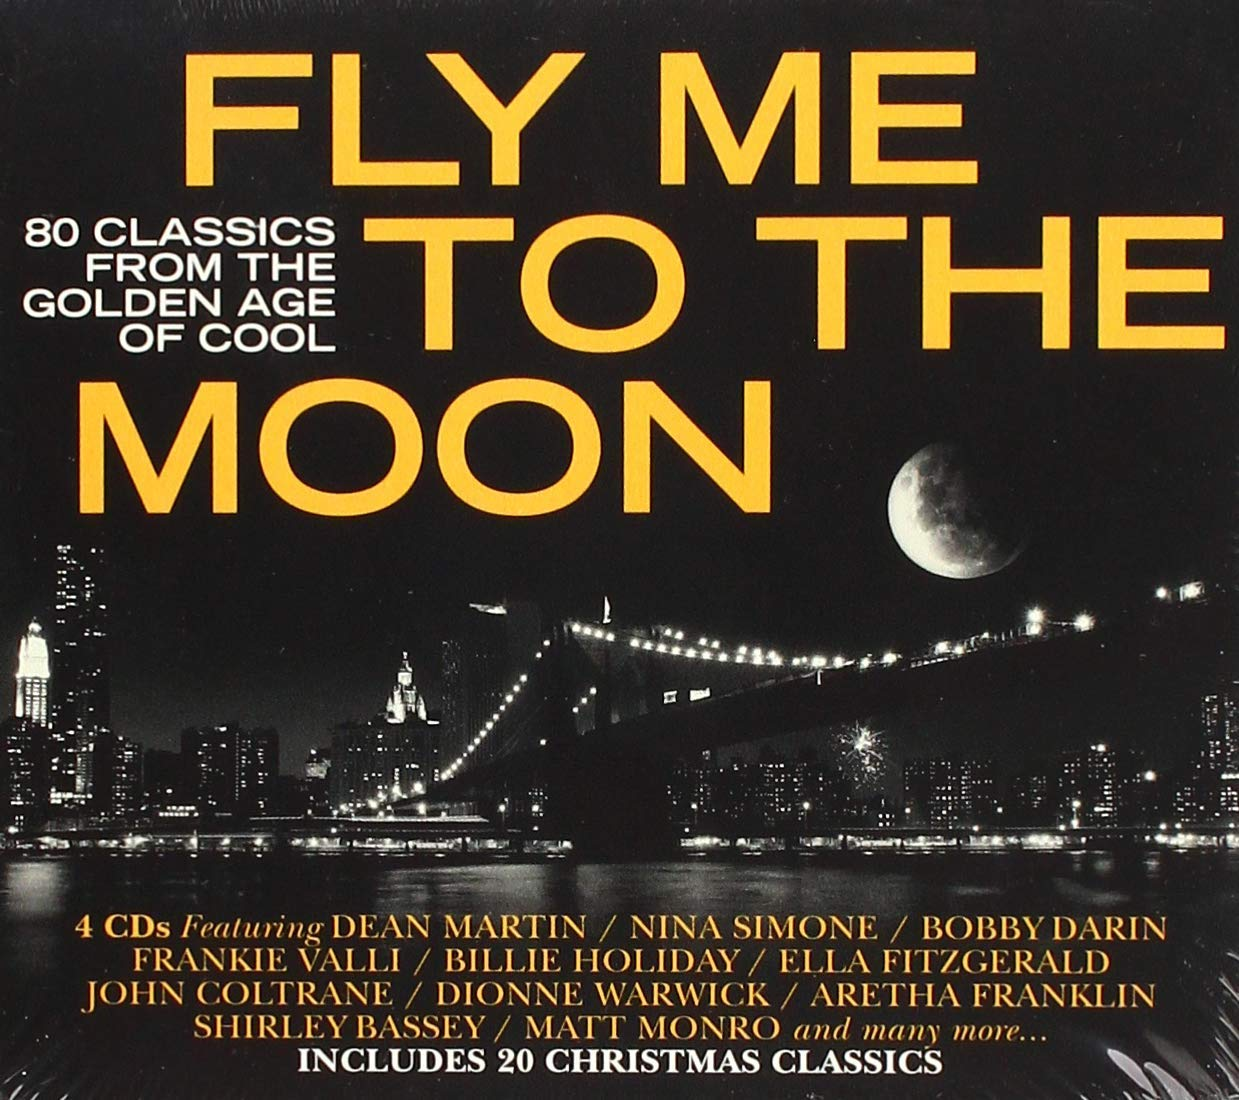 VARIOUS ARTISTS - Fly Me To The Moon / Various - Amazon.com Music